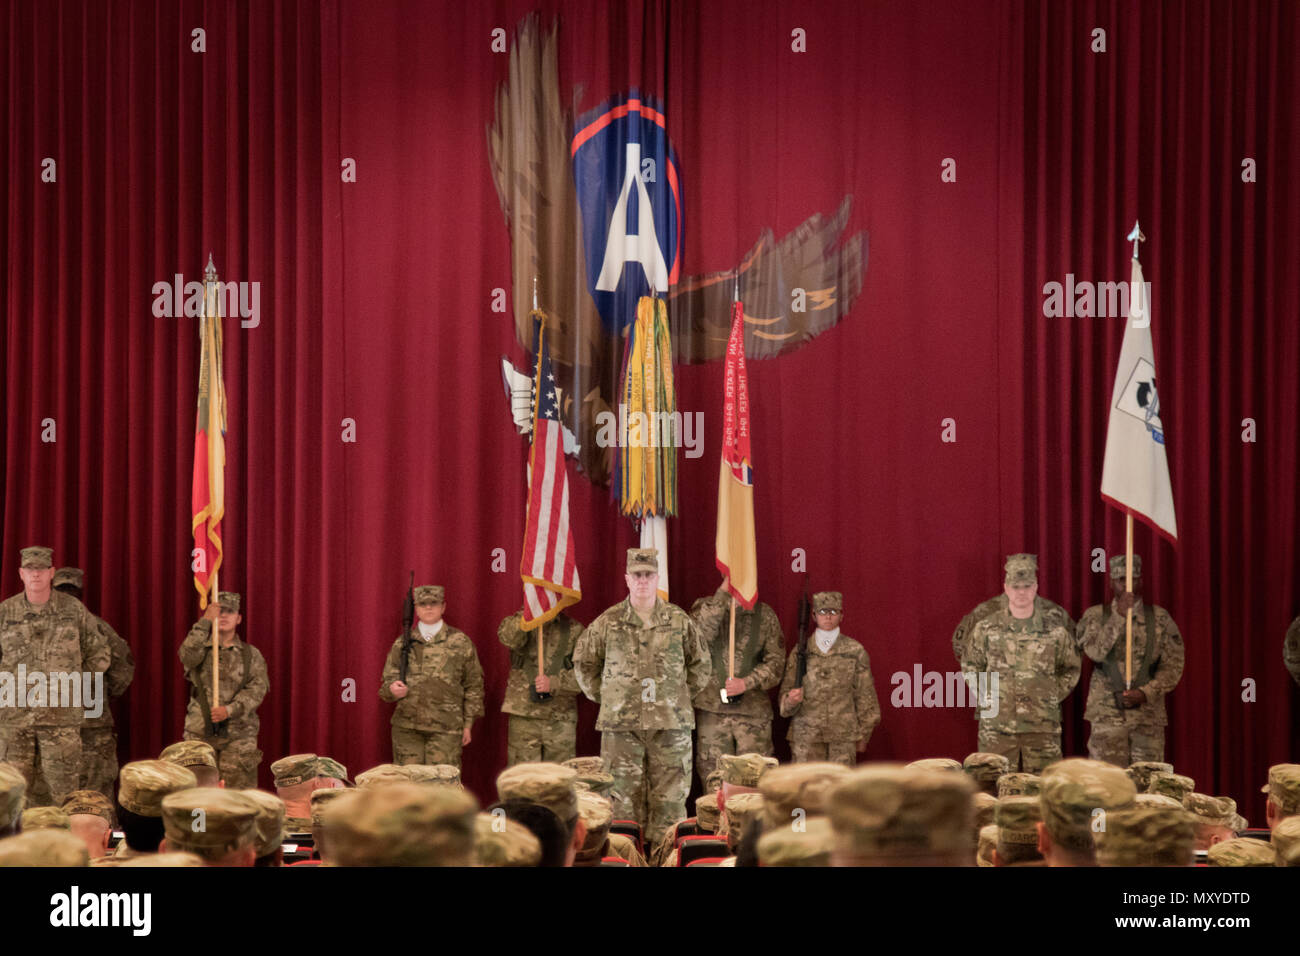 Soldiers of the 451st Sustainment Command (Expeditionary) prepare to case their color and guideon during their transfer of authority ceremony to the 316th ESC at Camp Arifjan, Kuwait, Dec. 23, 2016. (U.S. Army Photo by Staff Sgt. Dalton Smith) - Stock Image